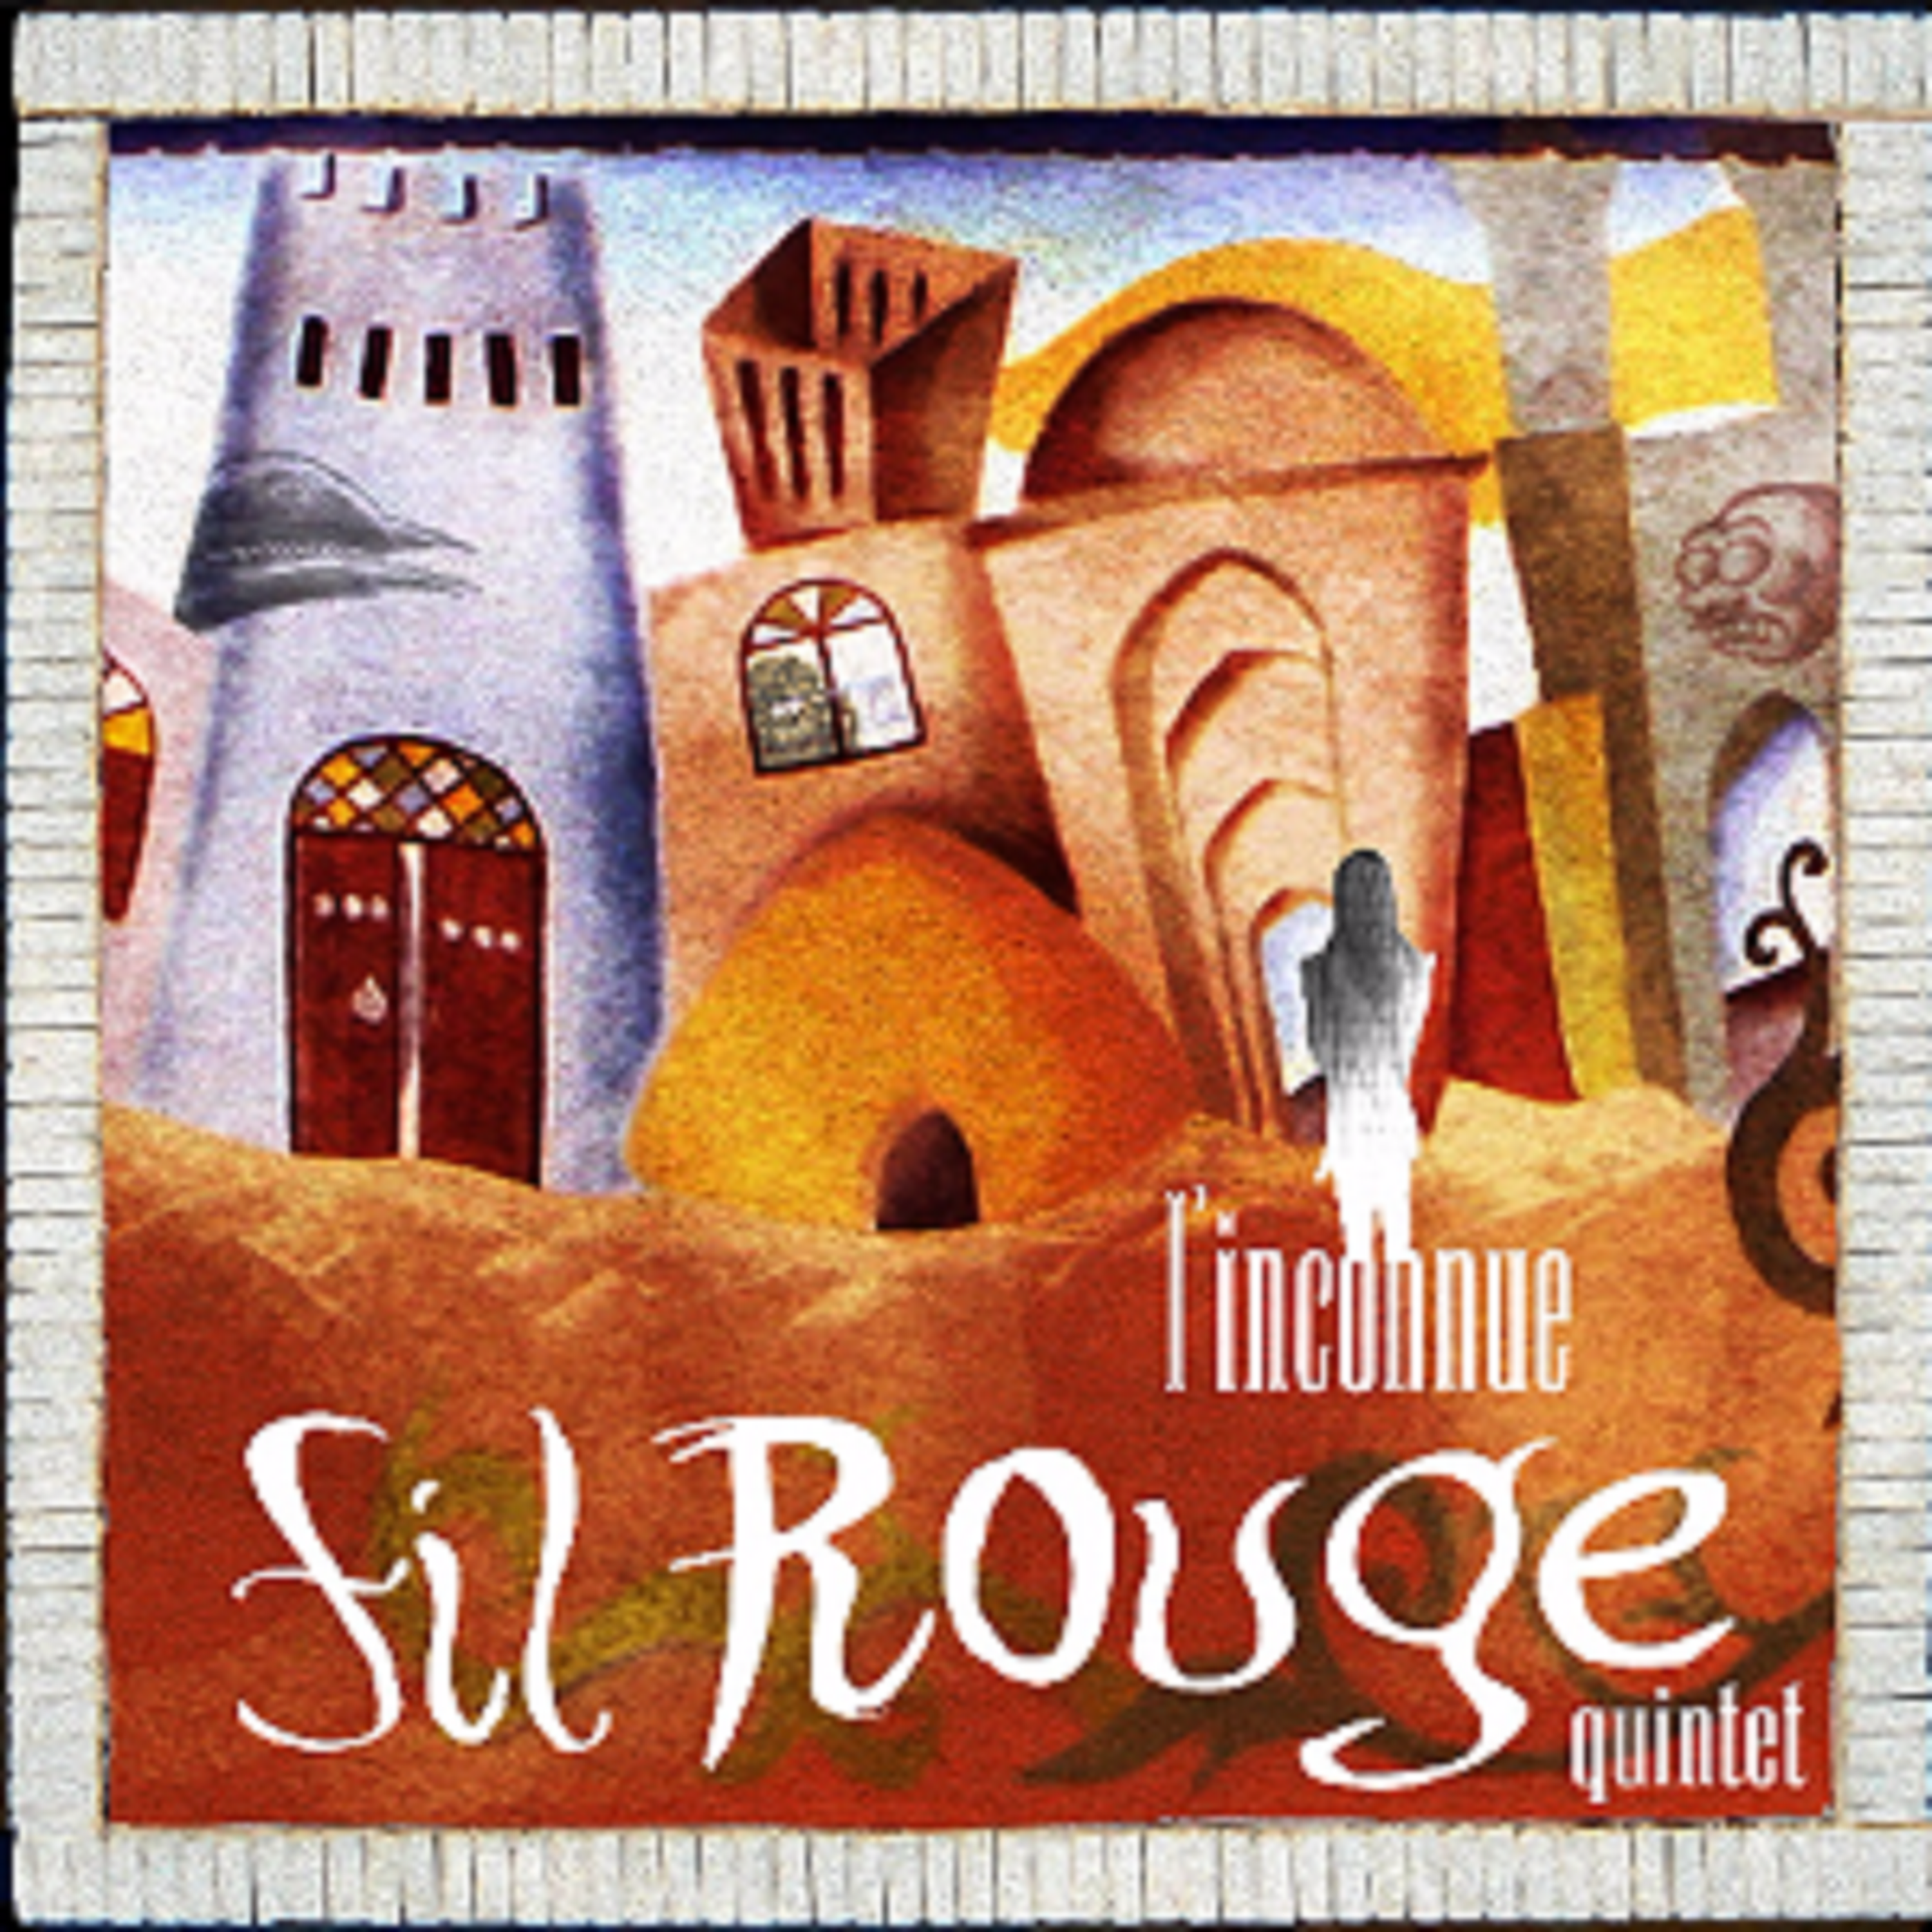 1531784896 cover fil rouge 3000 x 3000 pixel